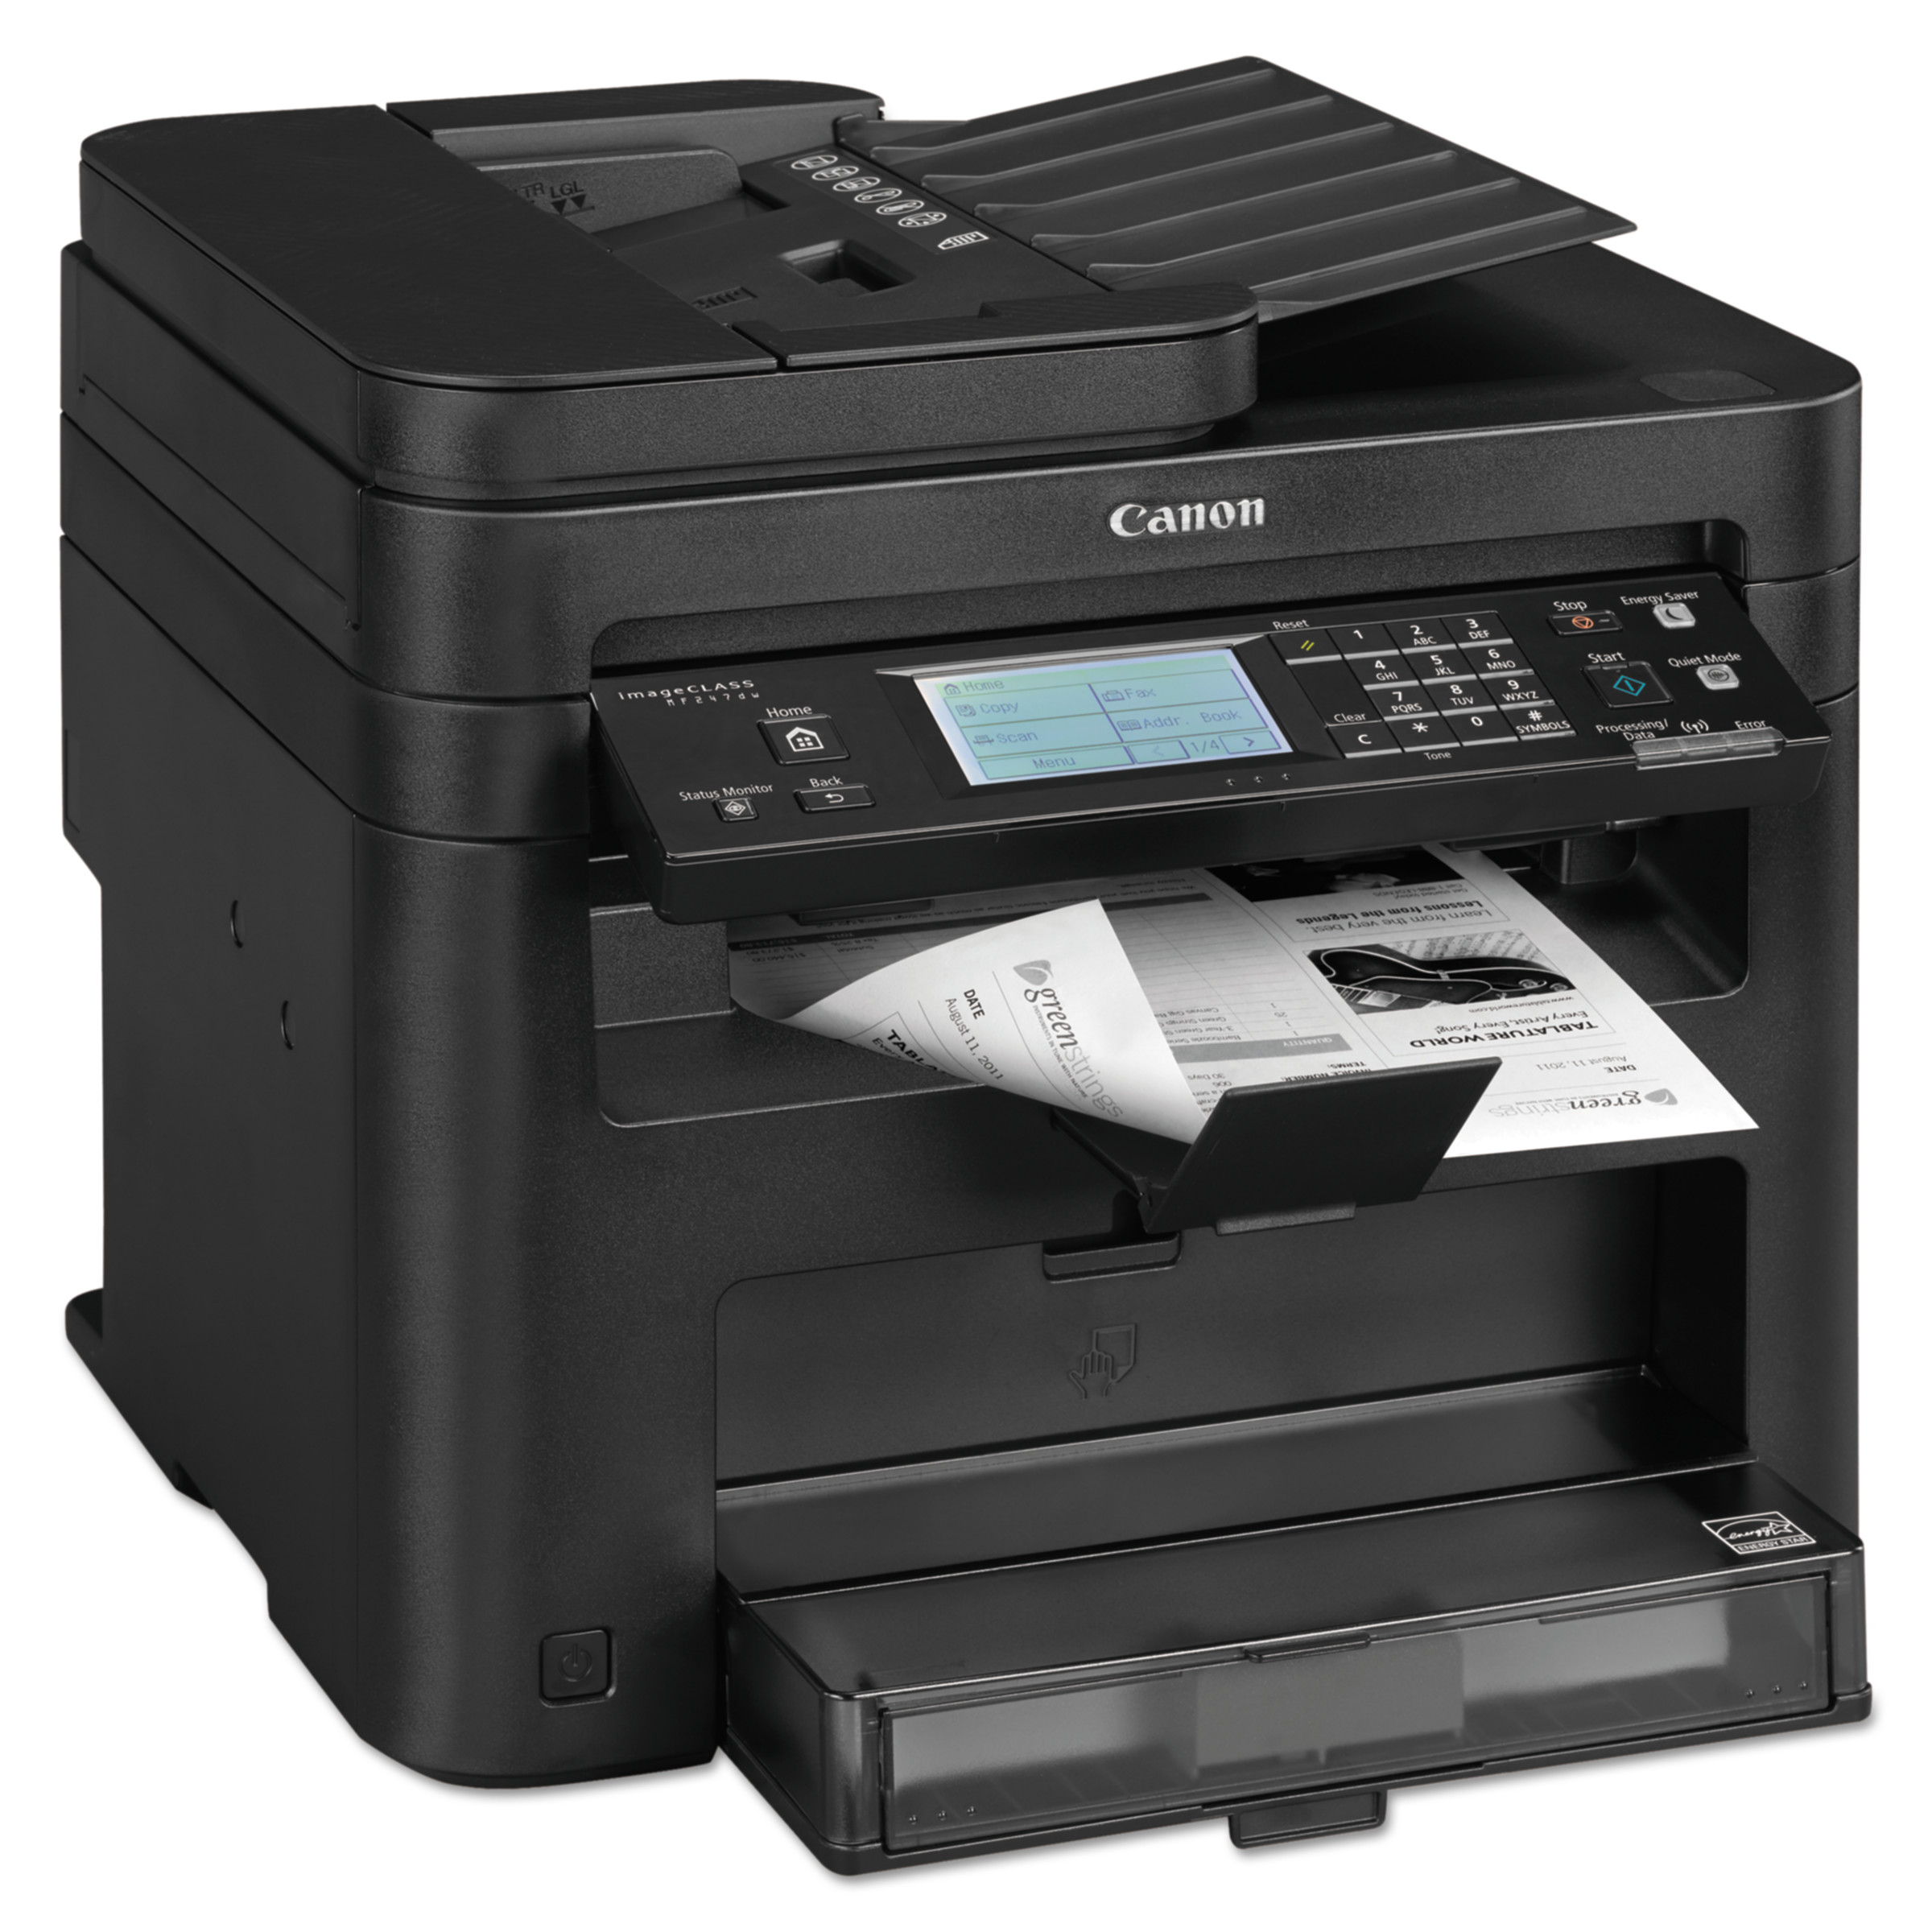 Canon imageCLASS MF247dw Wireless Multifunction Duplex Laser, Copy; Fax; Print; Scan